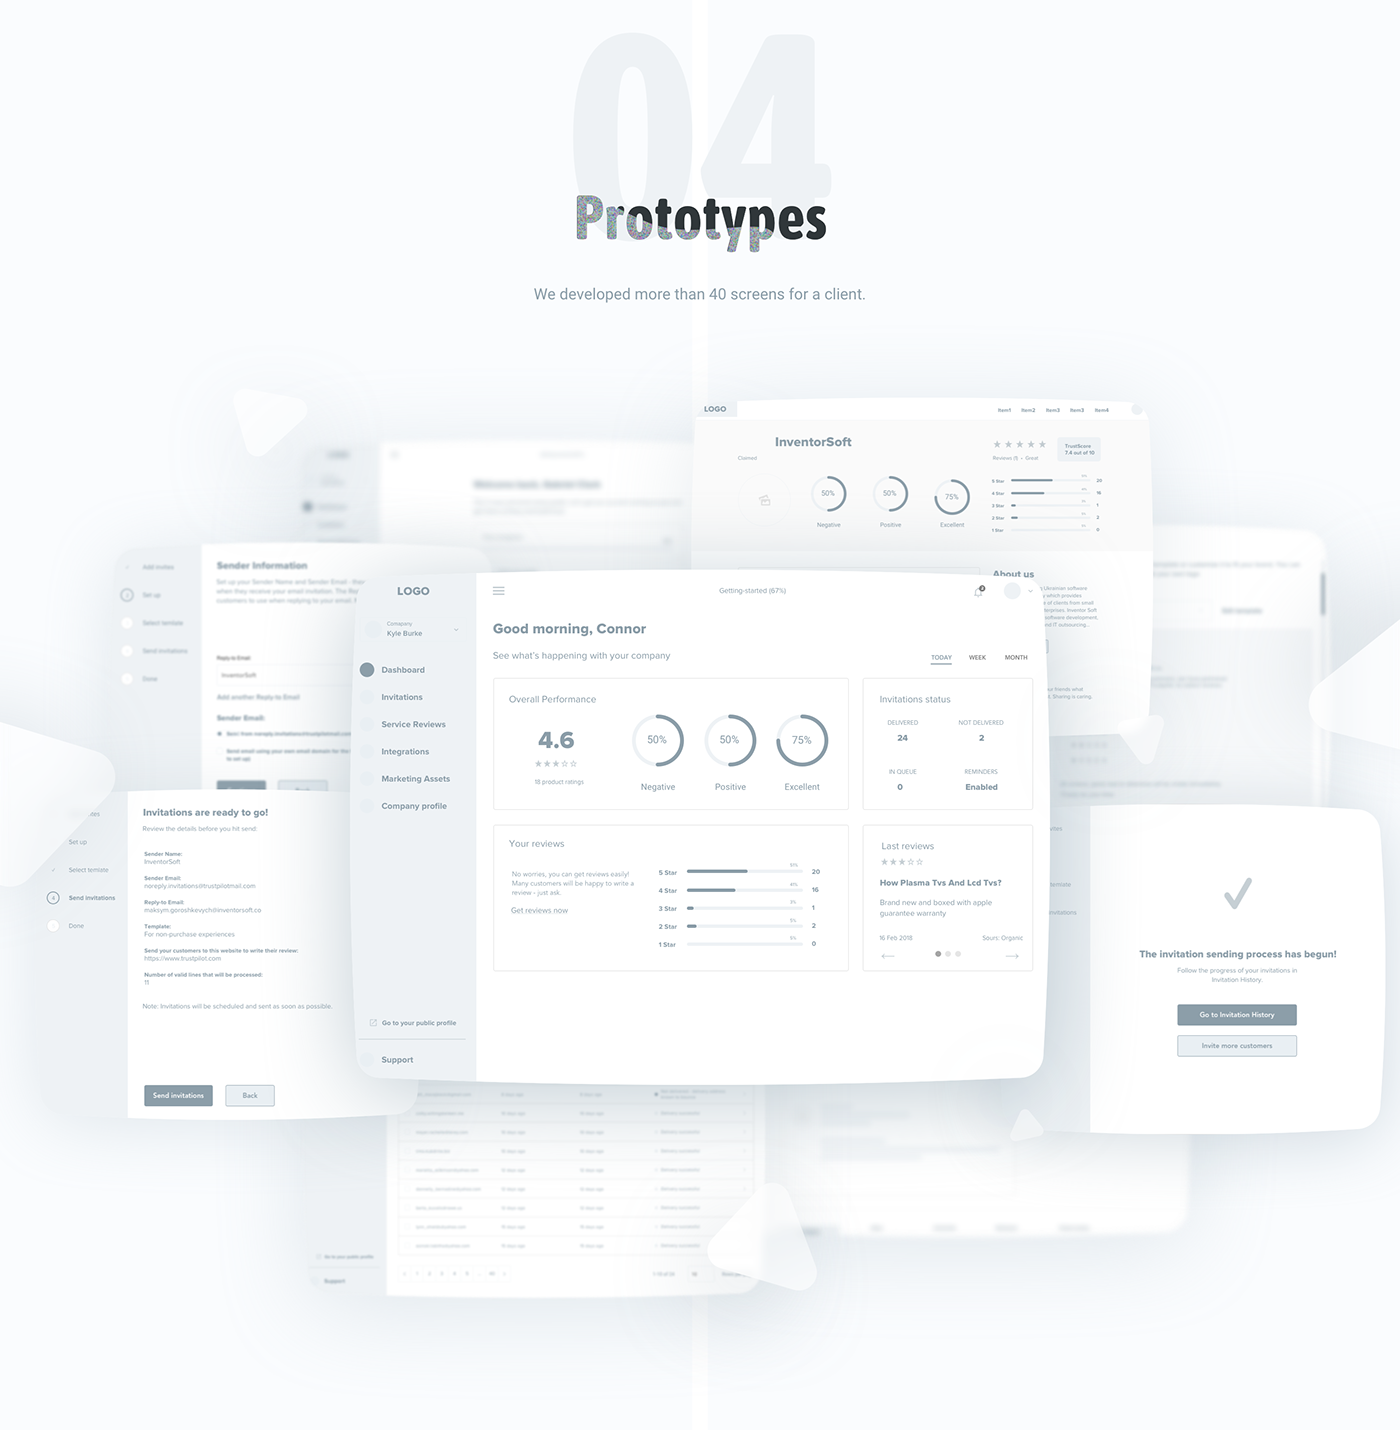 UI ux Webdesign uxdesign UserExperience Interface UI/UX product dashboard uesr interfase